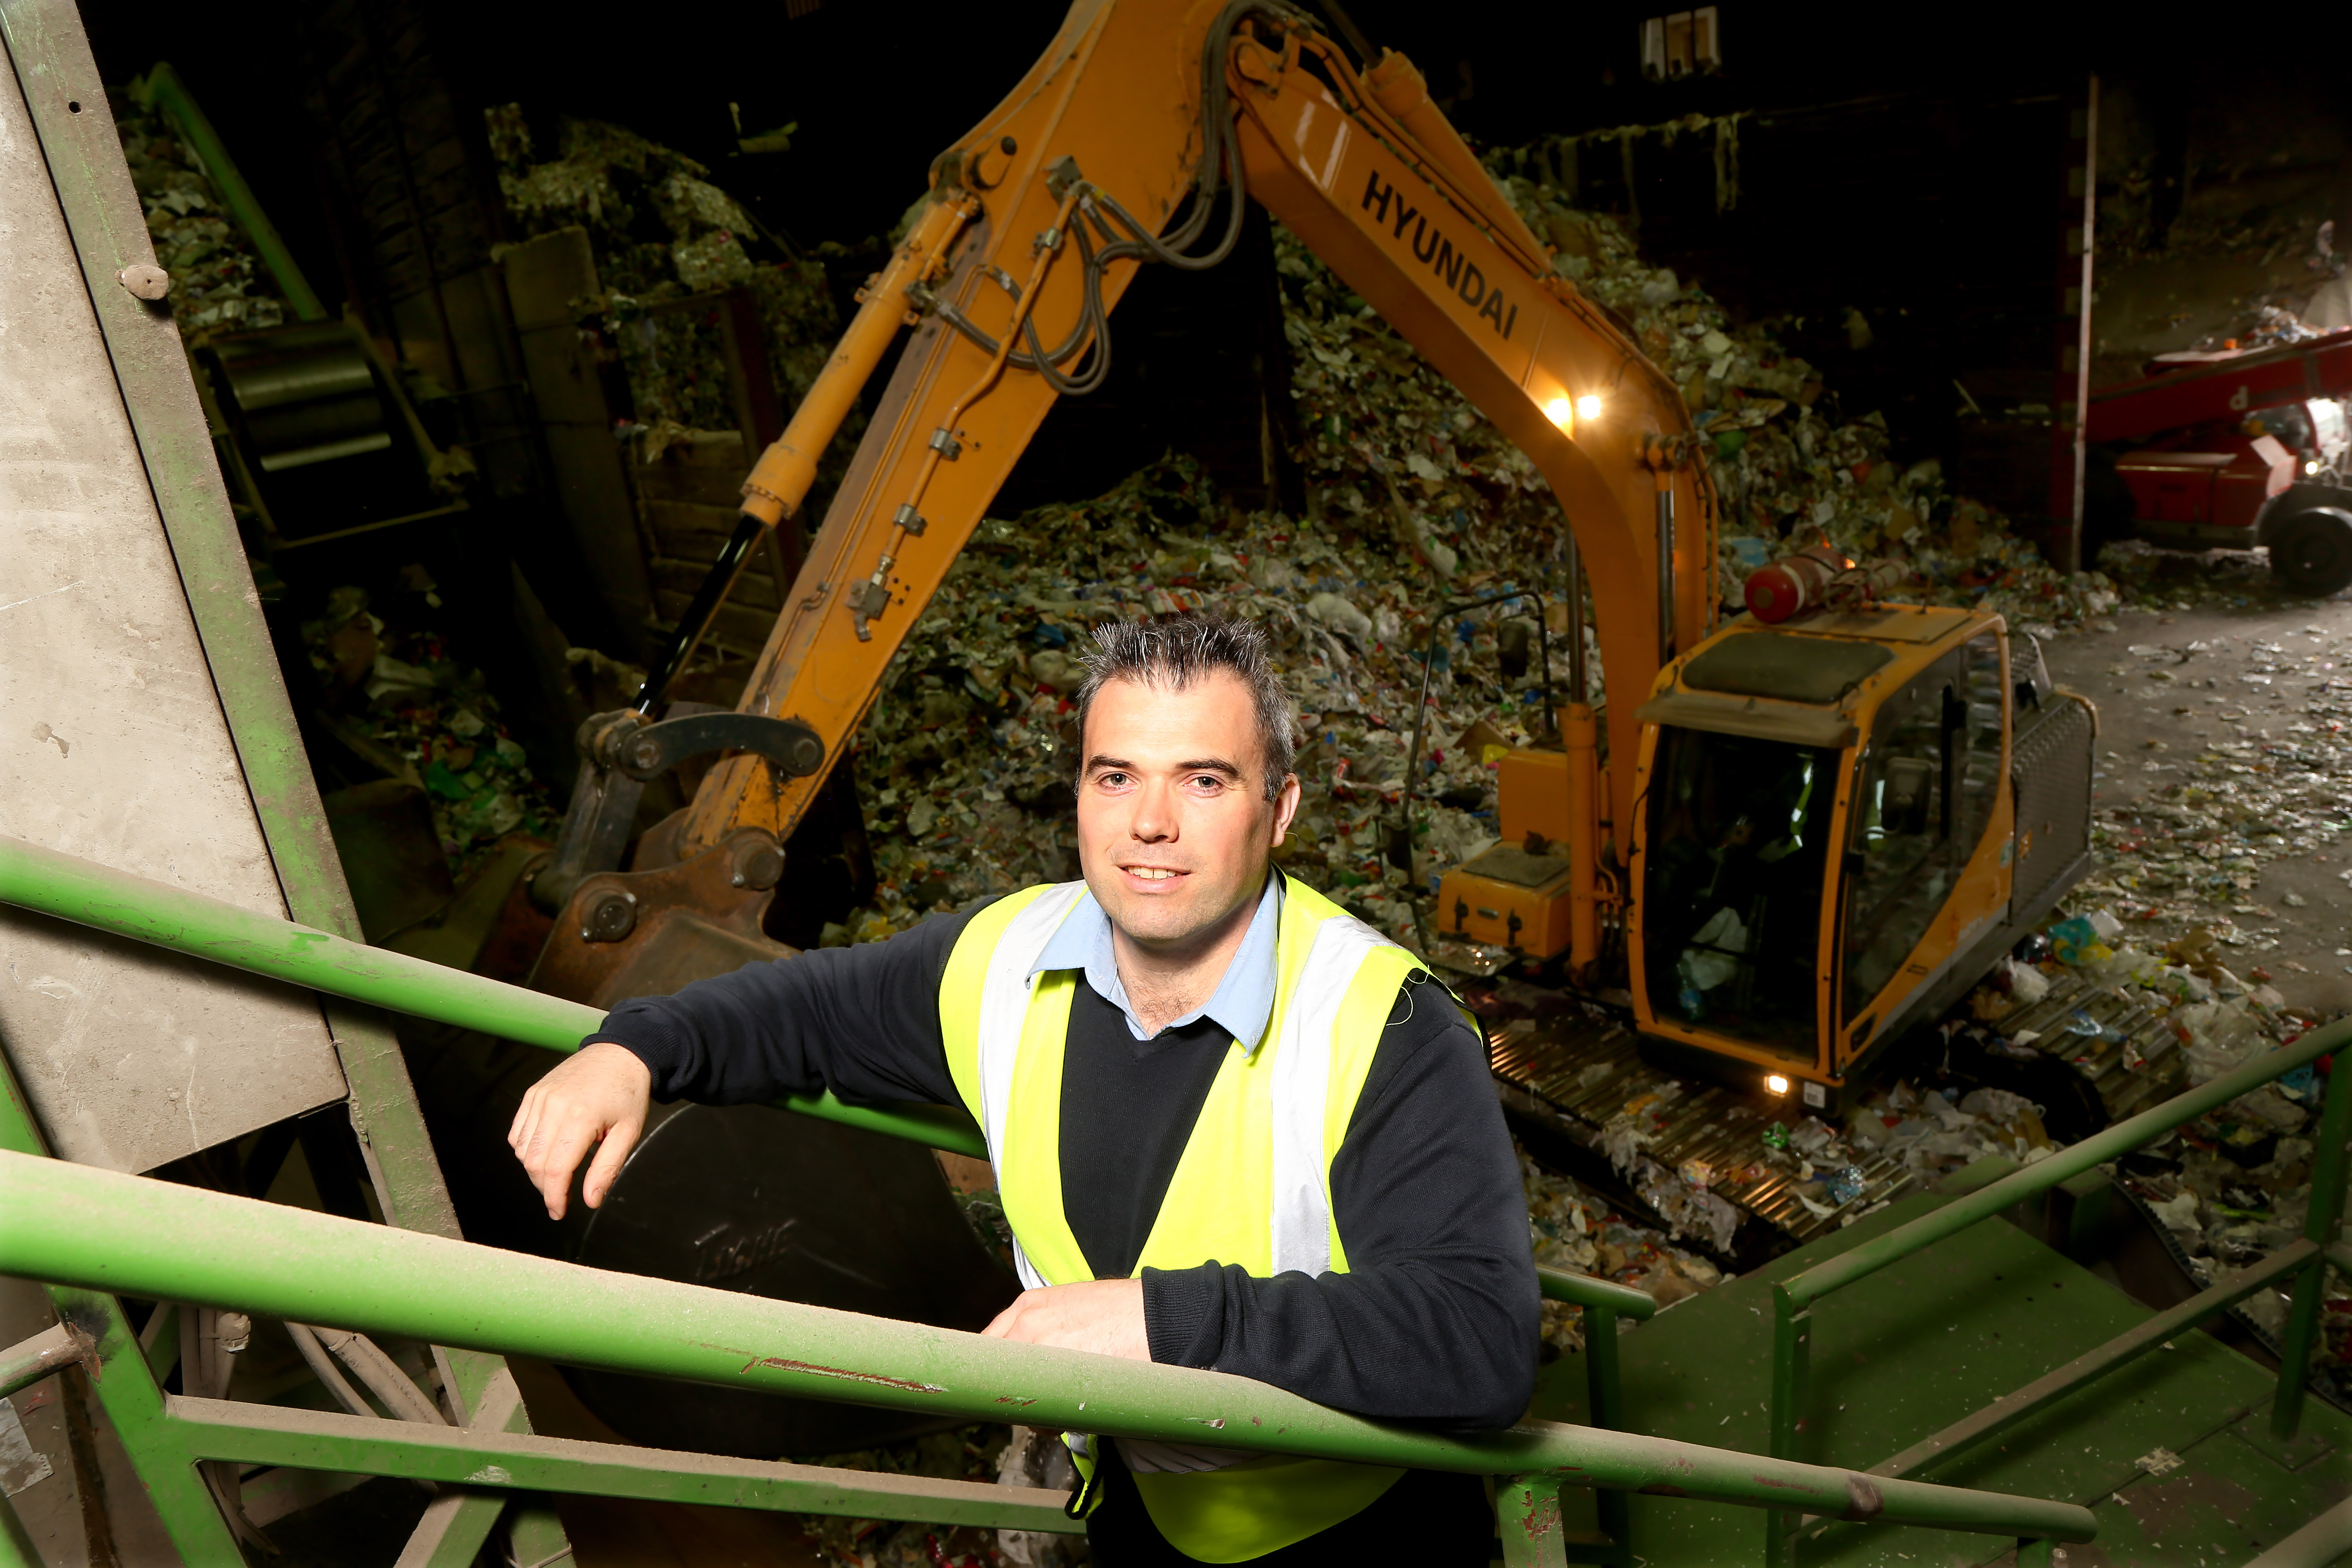 Waste management companies must act on HSE report highlighting injuries due to box collection systems